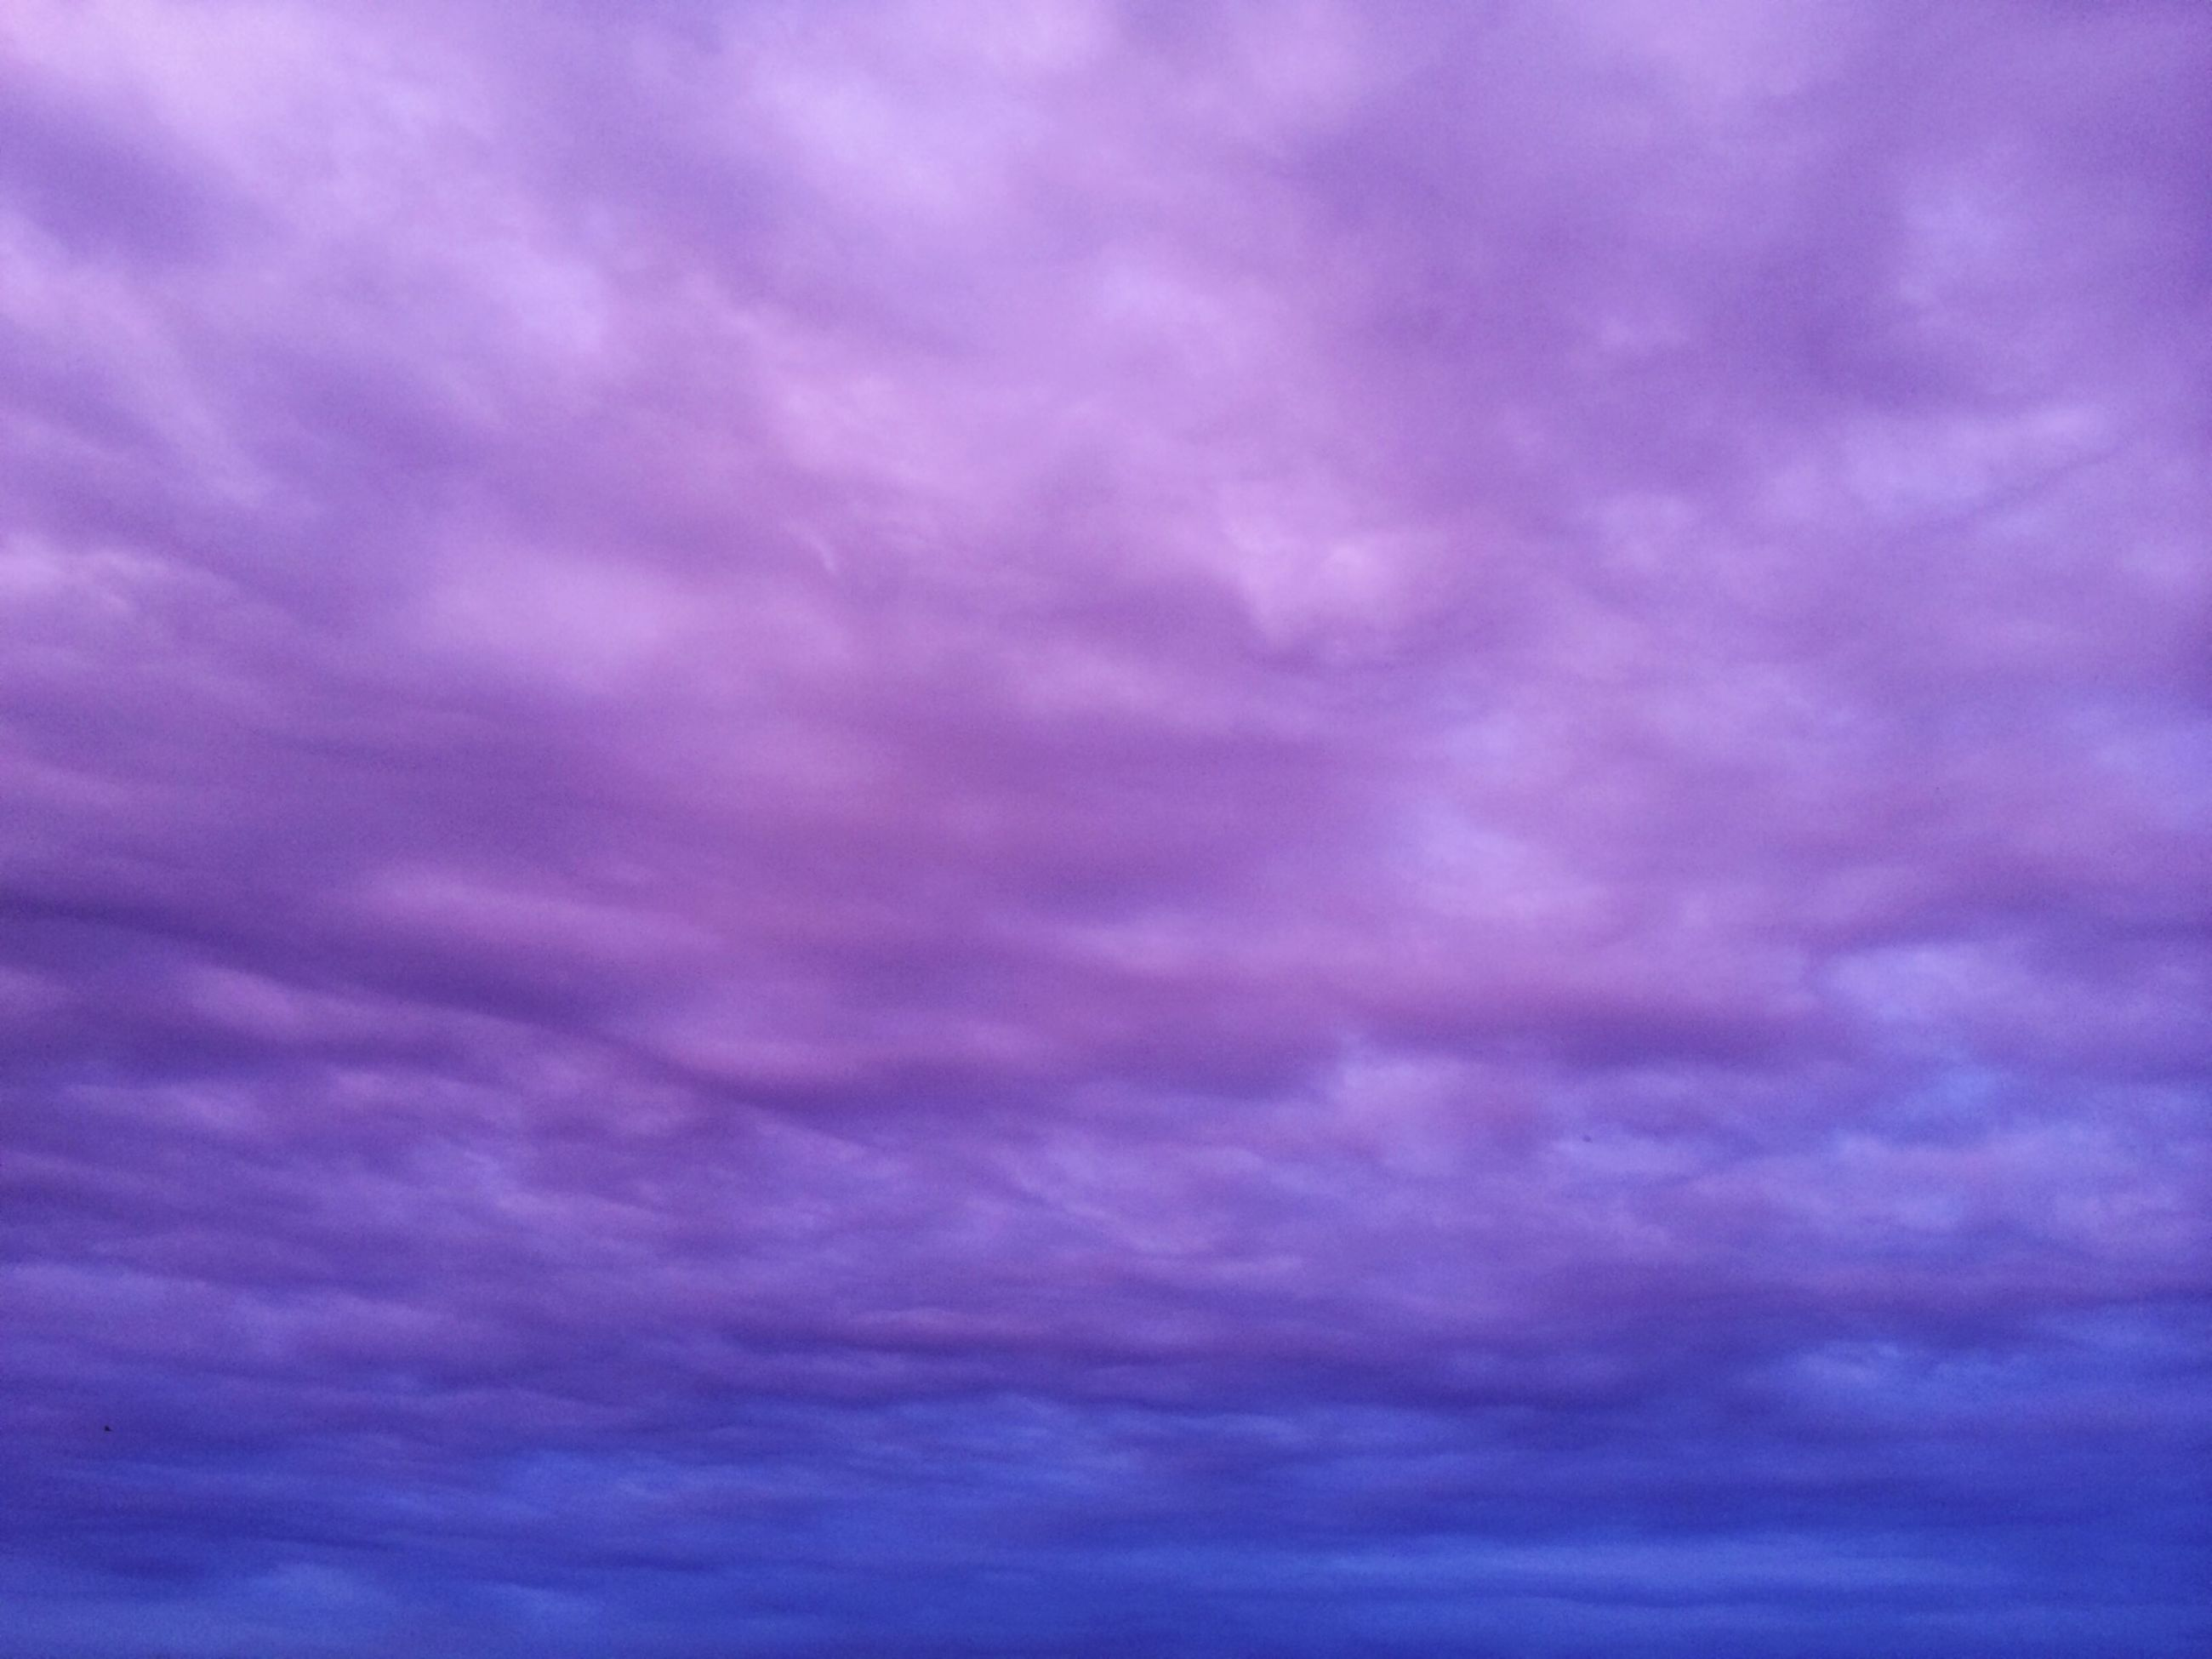 sky, cloud - sky, cloudy, low angle view, beauty in nature, scenics, tranquility, backgrounds, full frame, nature, cloudscape, sky only, tranquil scene, weather, dramatic sky, cloud, overcast, idyllic, purple, blue